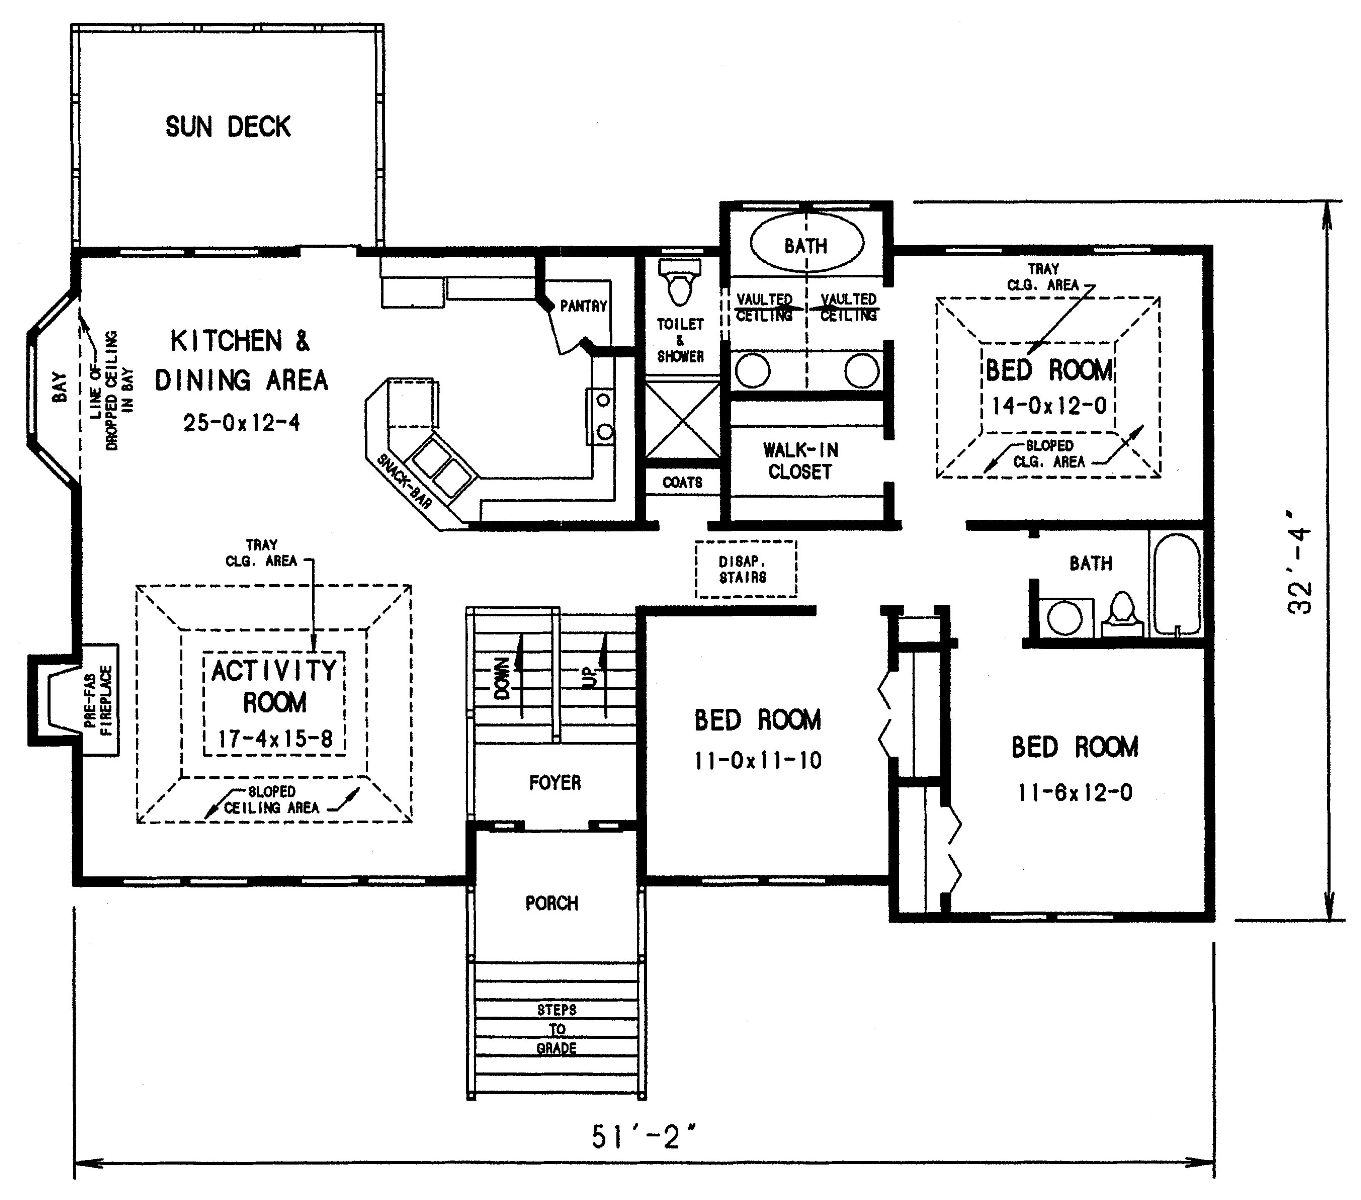 Split Foyer Home Floor Plans : The dahlonega bedrooms and baths house